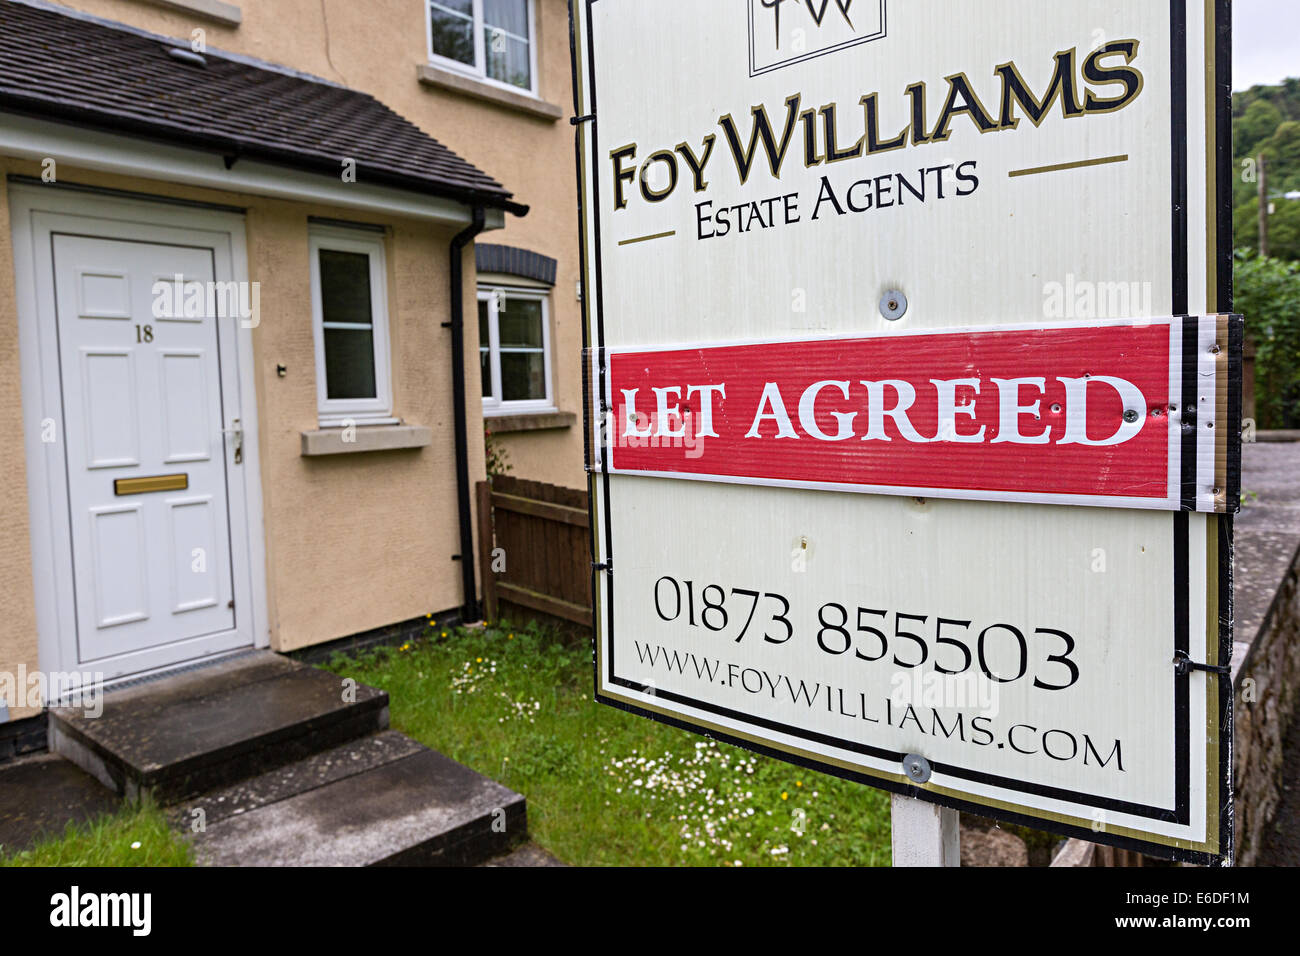 Let Agreed sign on estate agent notice, Wales, UK - Stock Image